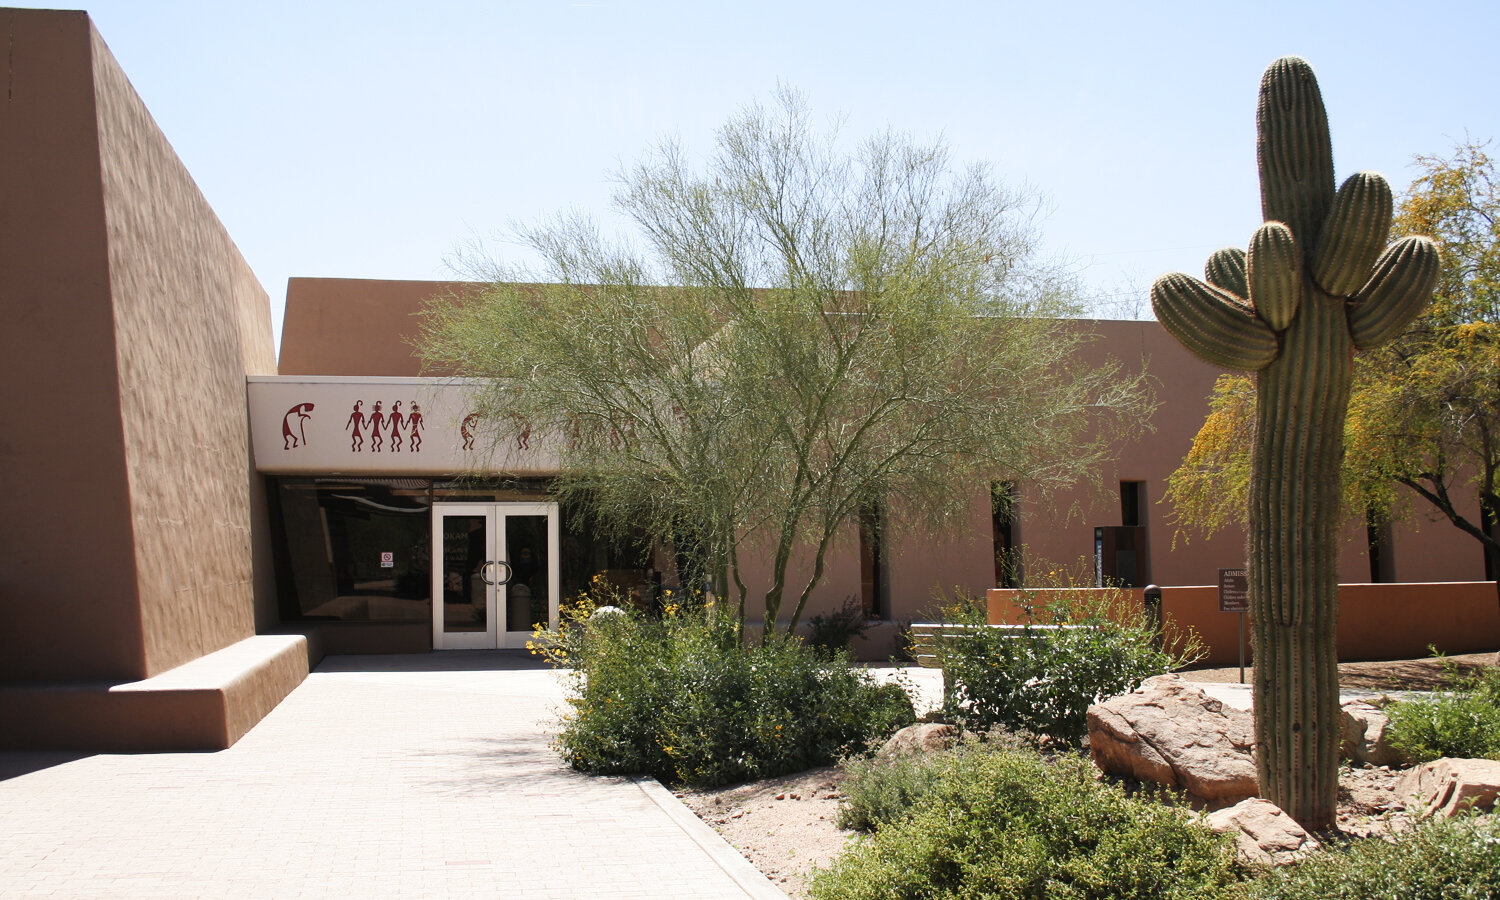 PUEBLO GRANDE MUSEUM  4619 E. Washington St, Phoenix, AZ 85034 5.50 mi / 8.85 km from property